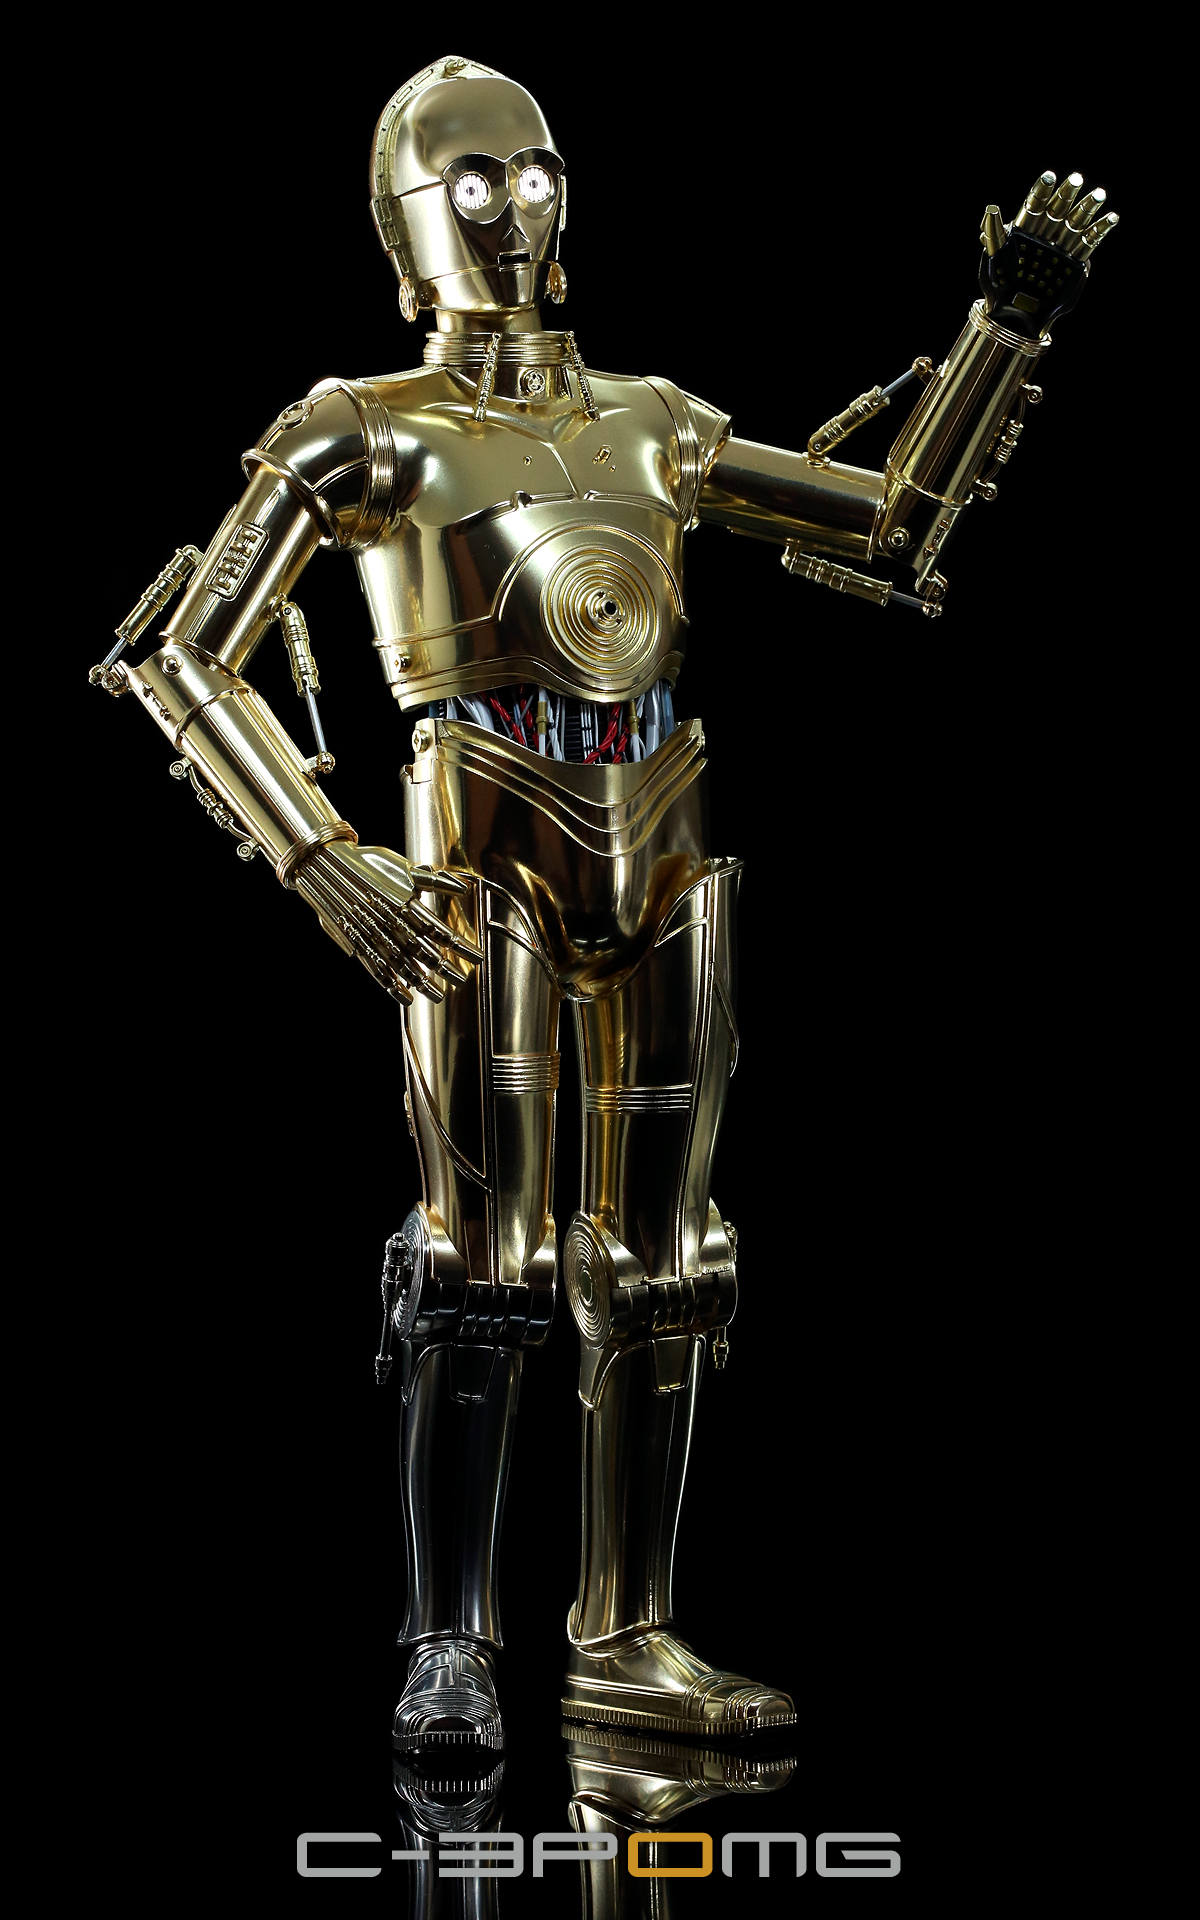 [Bandai] Star Wars: C-3PO - Perfect Model 1/6 scale - LANÇADO!!! - Página 2 C-3PO1034_zps69979a1f